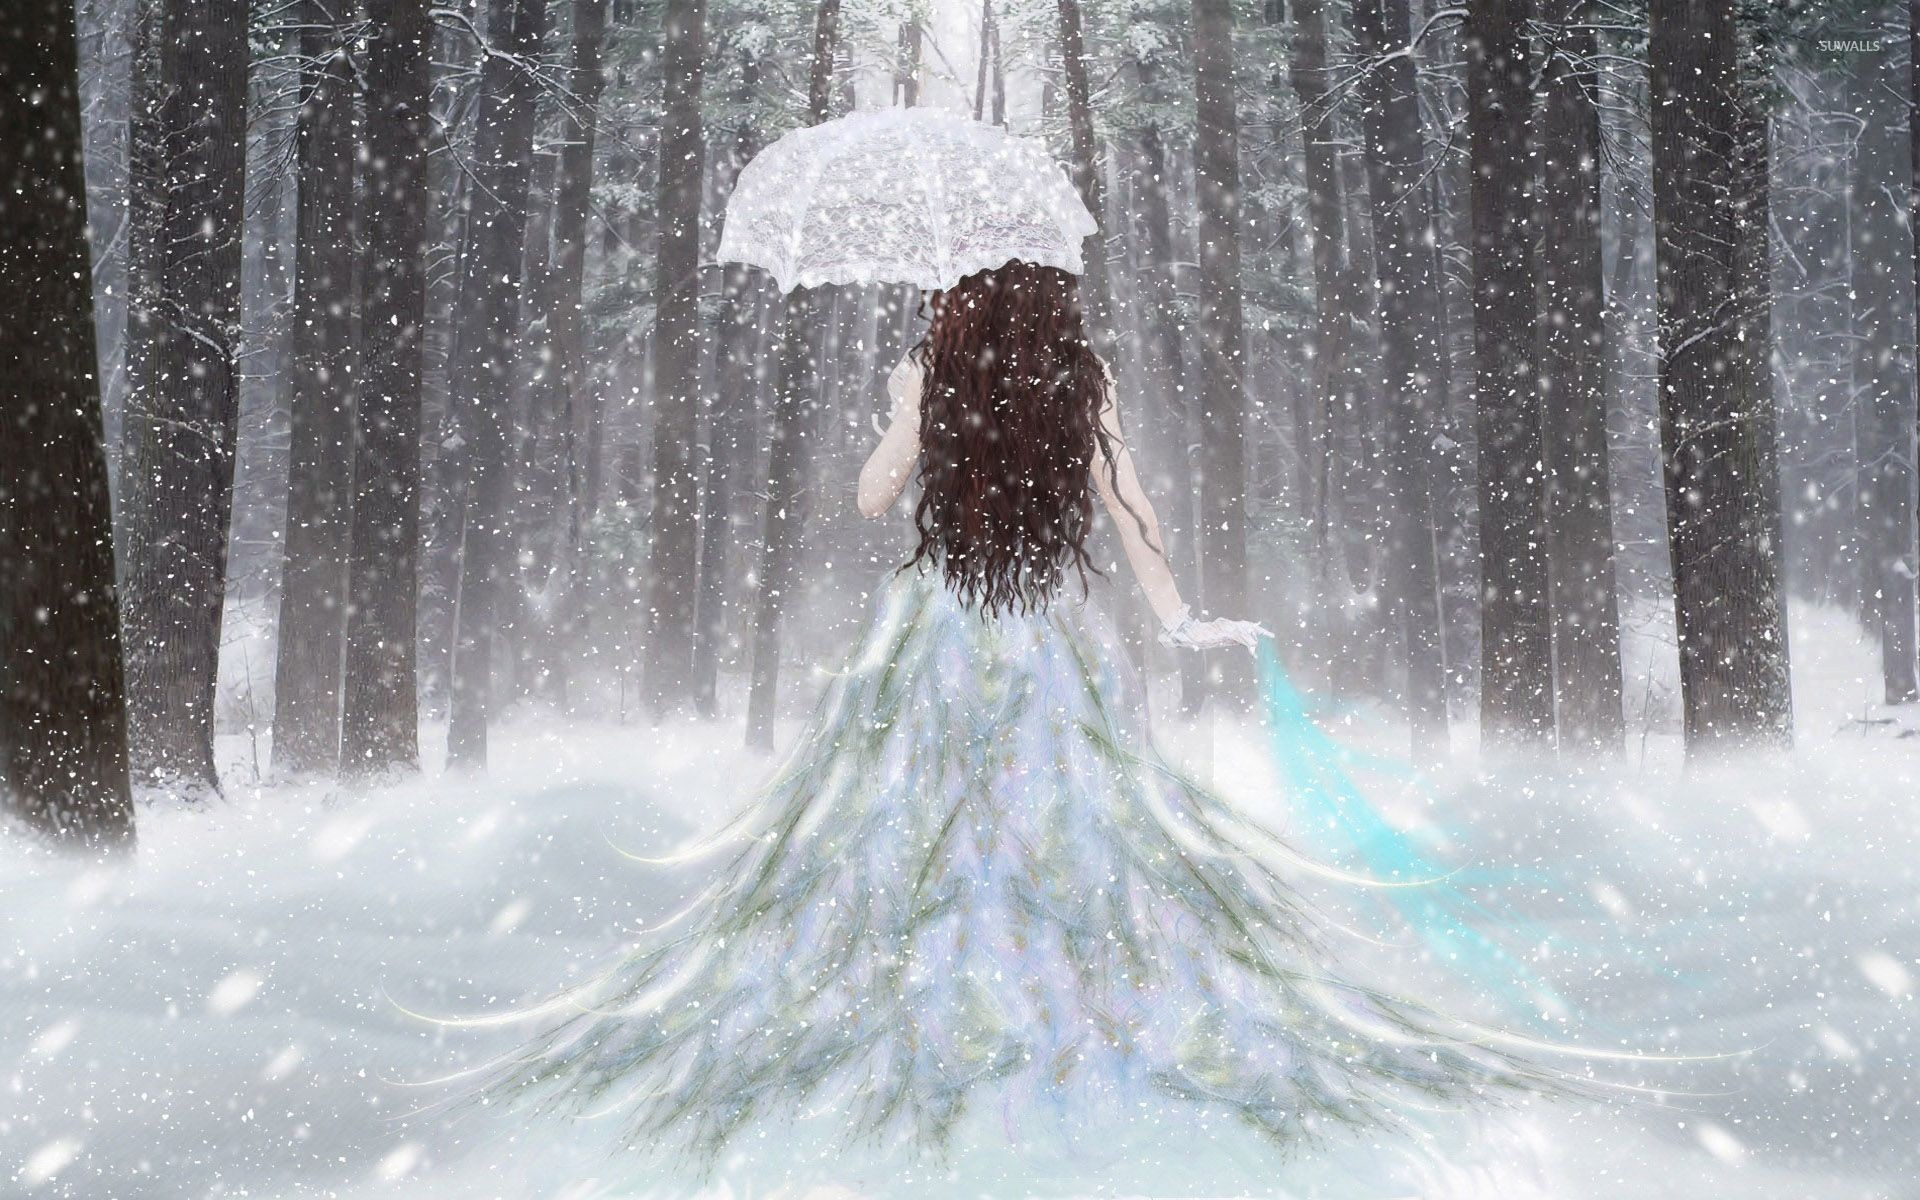 1920x1200 Princess with an umbrella in the snow wallpaper  jpg